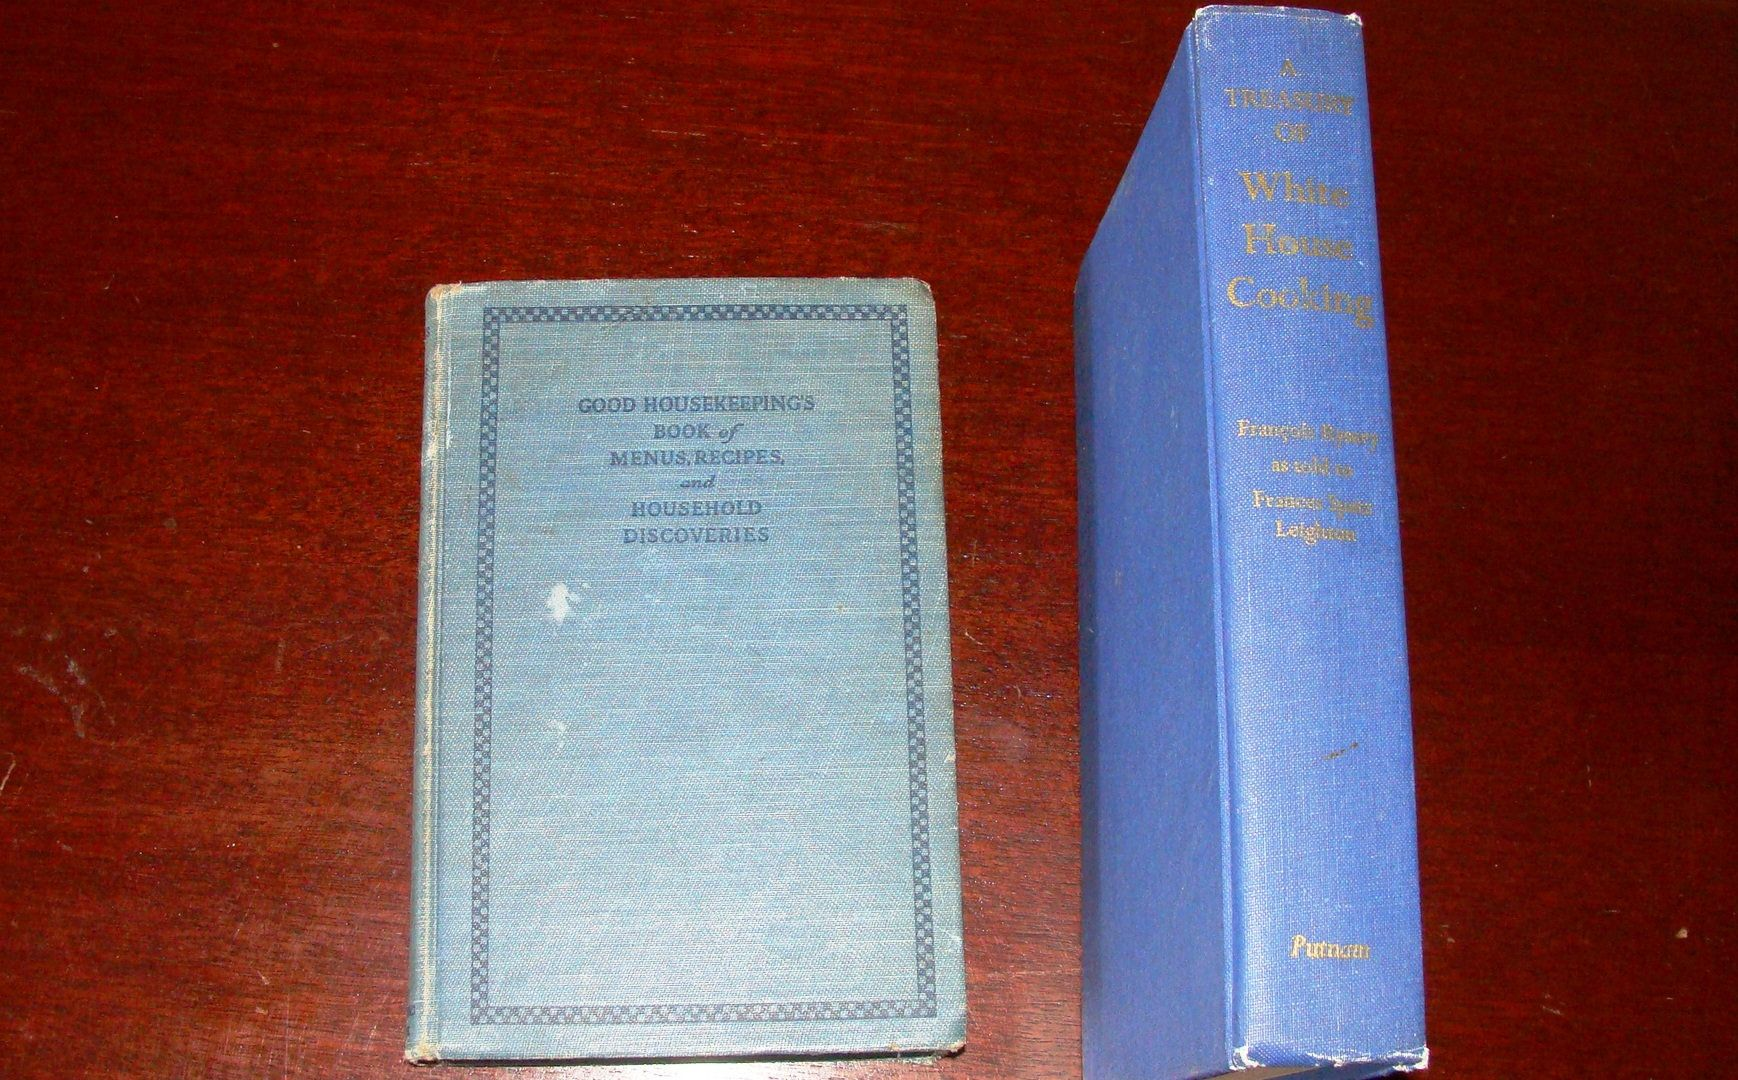 Good Housekeeping Book Of Menus Recipes Household Discovery 1926